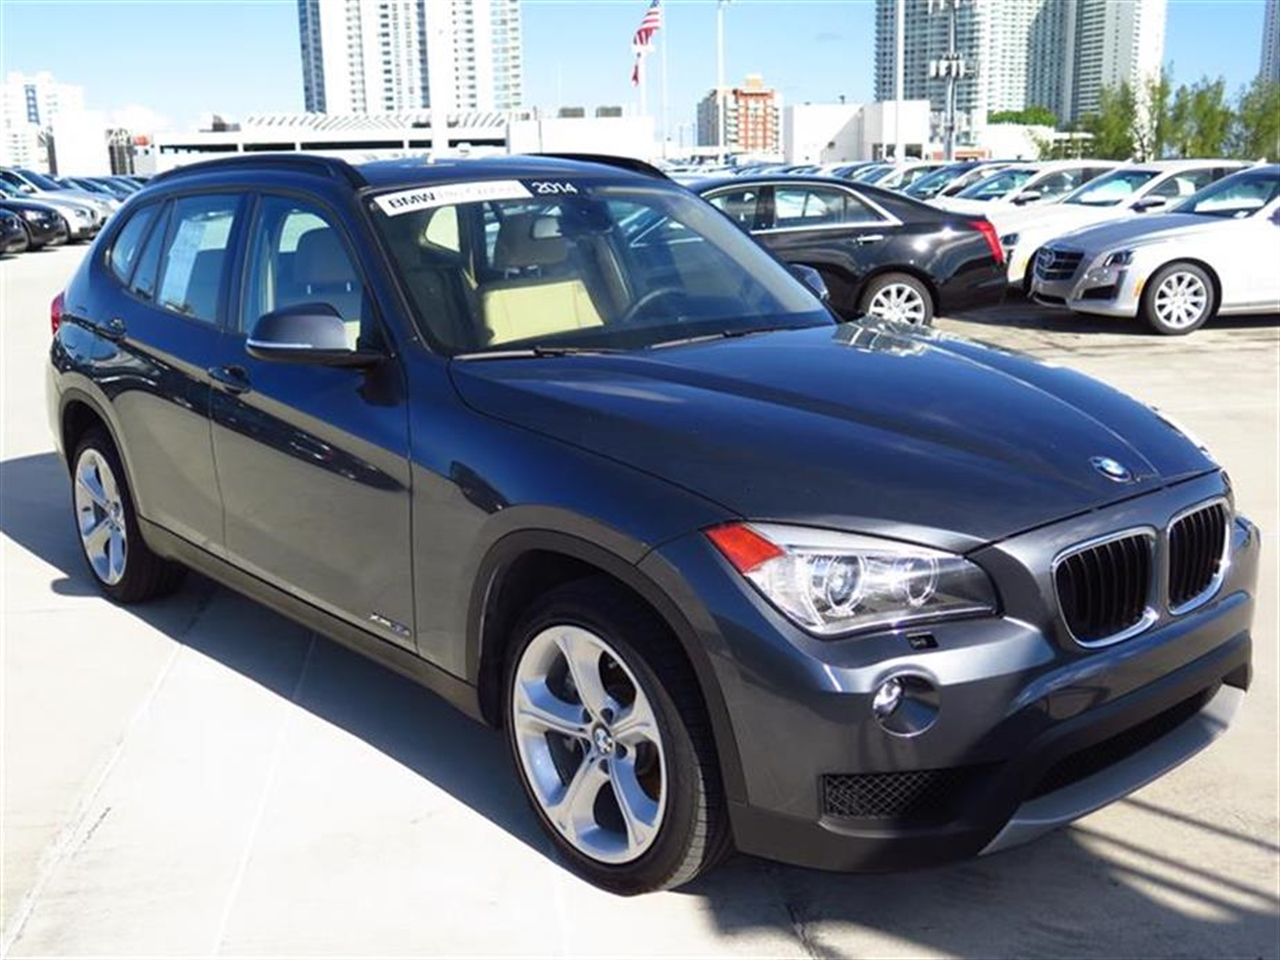 2014 BMW X1 AWD 4dr xDrive35i 10643 miles 2 Seatback Storage Pockets 3 12V DC Power Outlets LEA